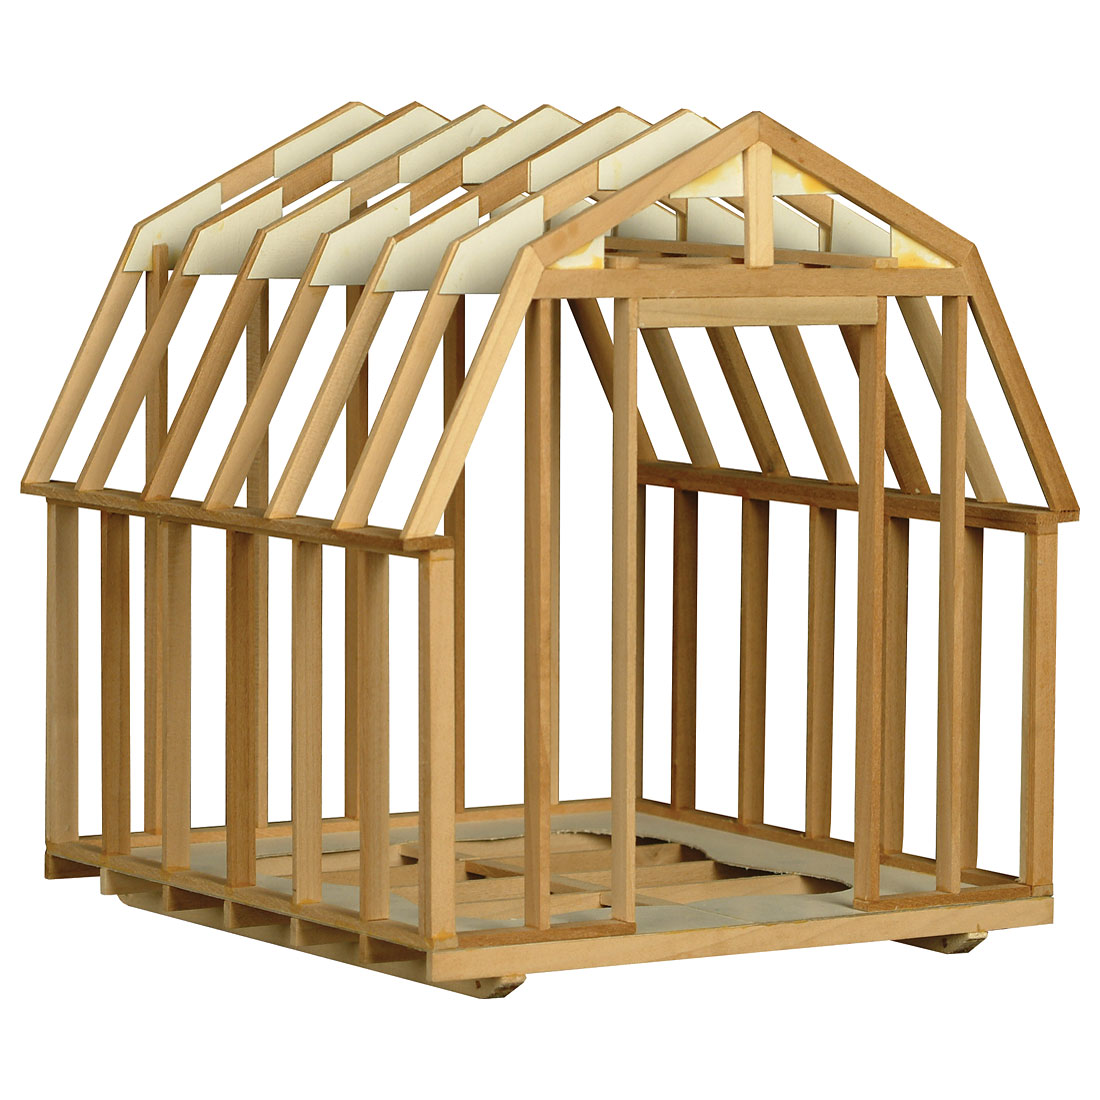 Utility Building Framing Kit 101 (W31573)